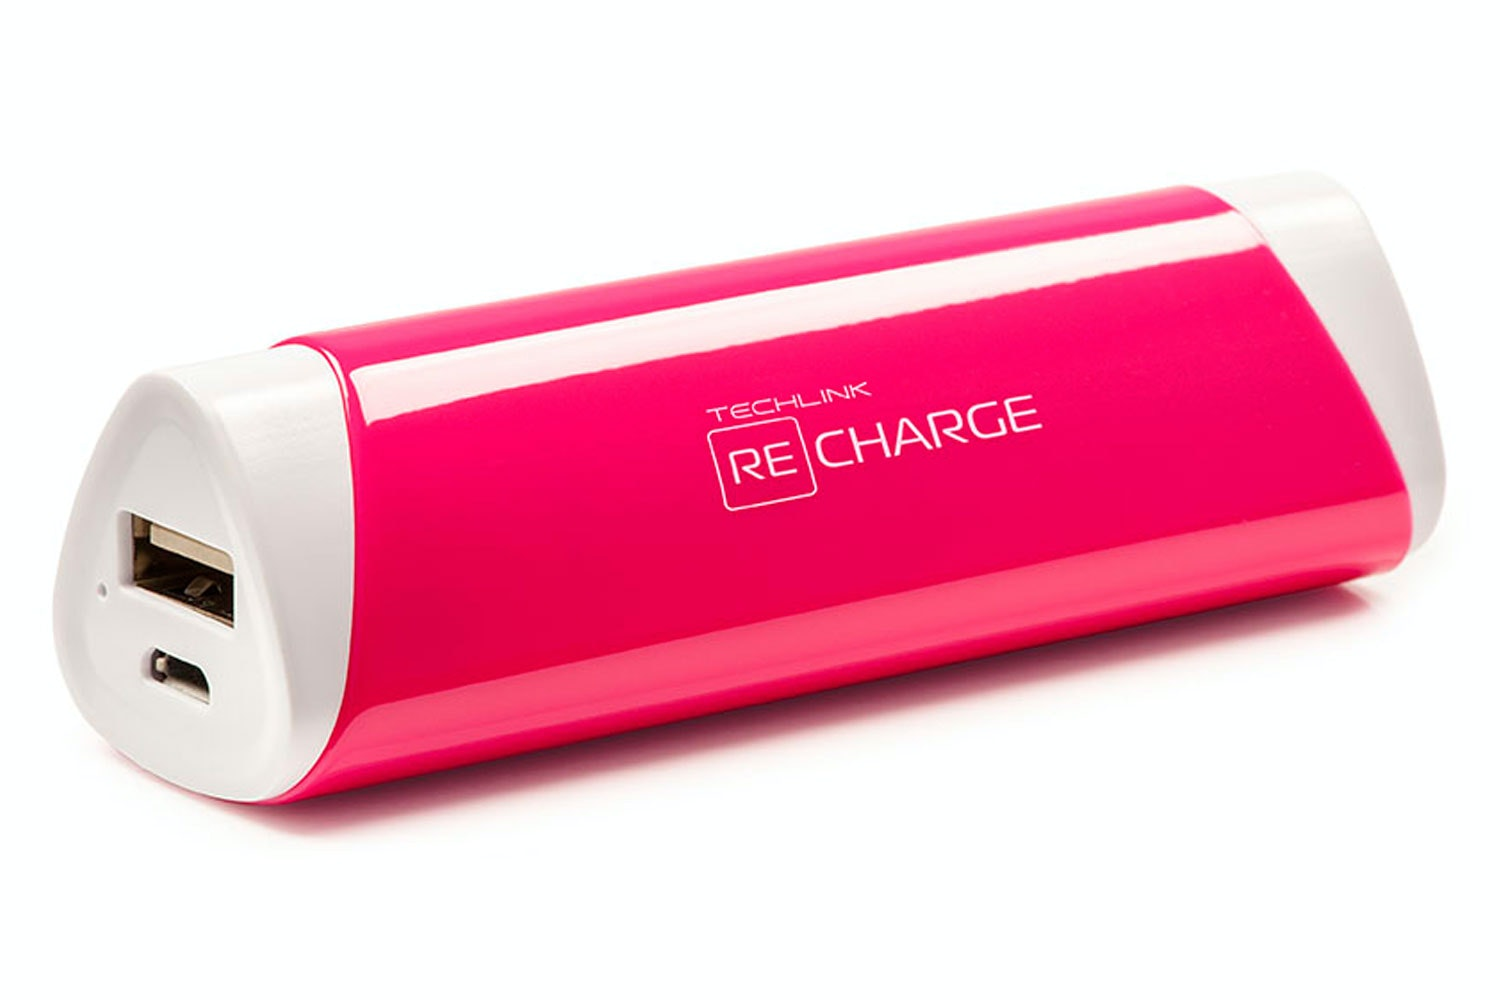 Techlink Recharge 2,600mAh Battery Pack